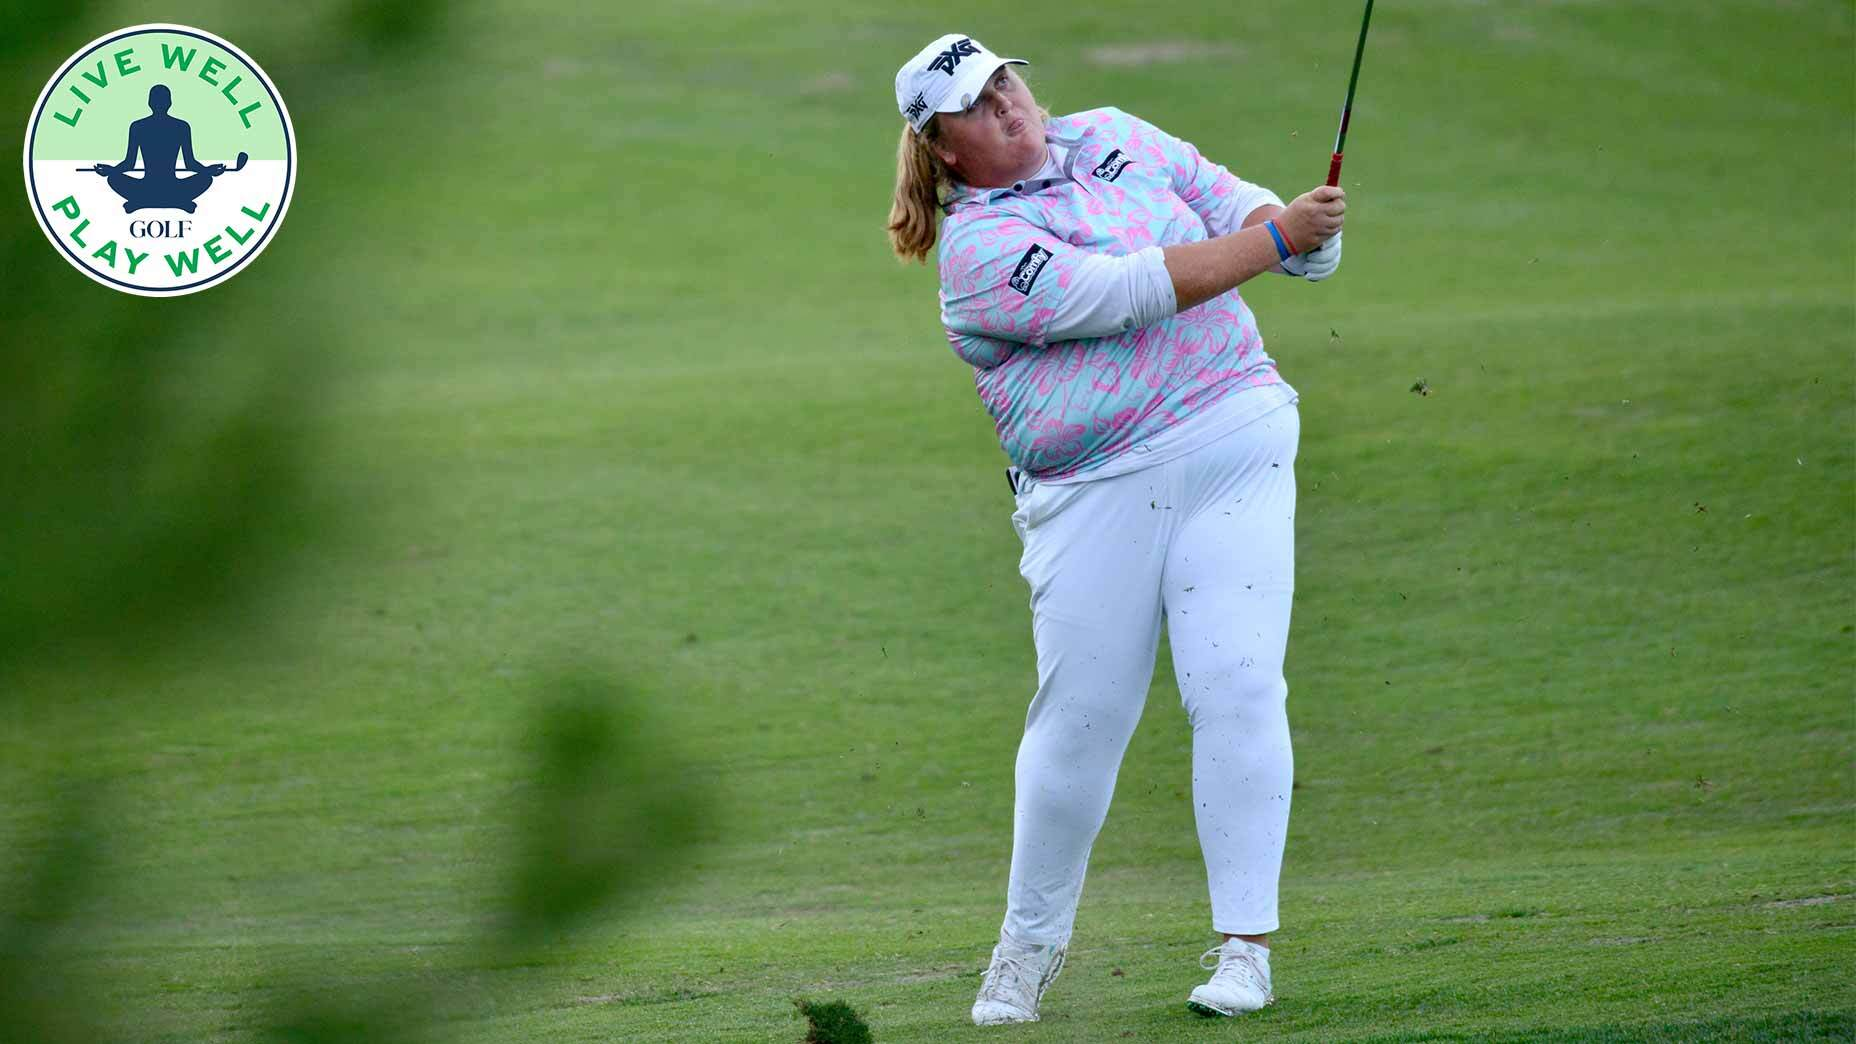 Haley Moore takes a swing